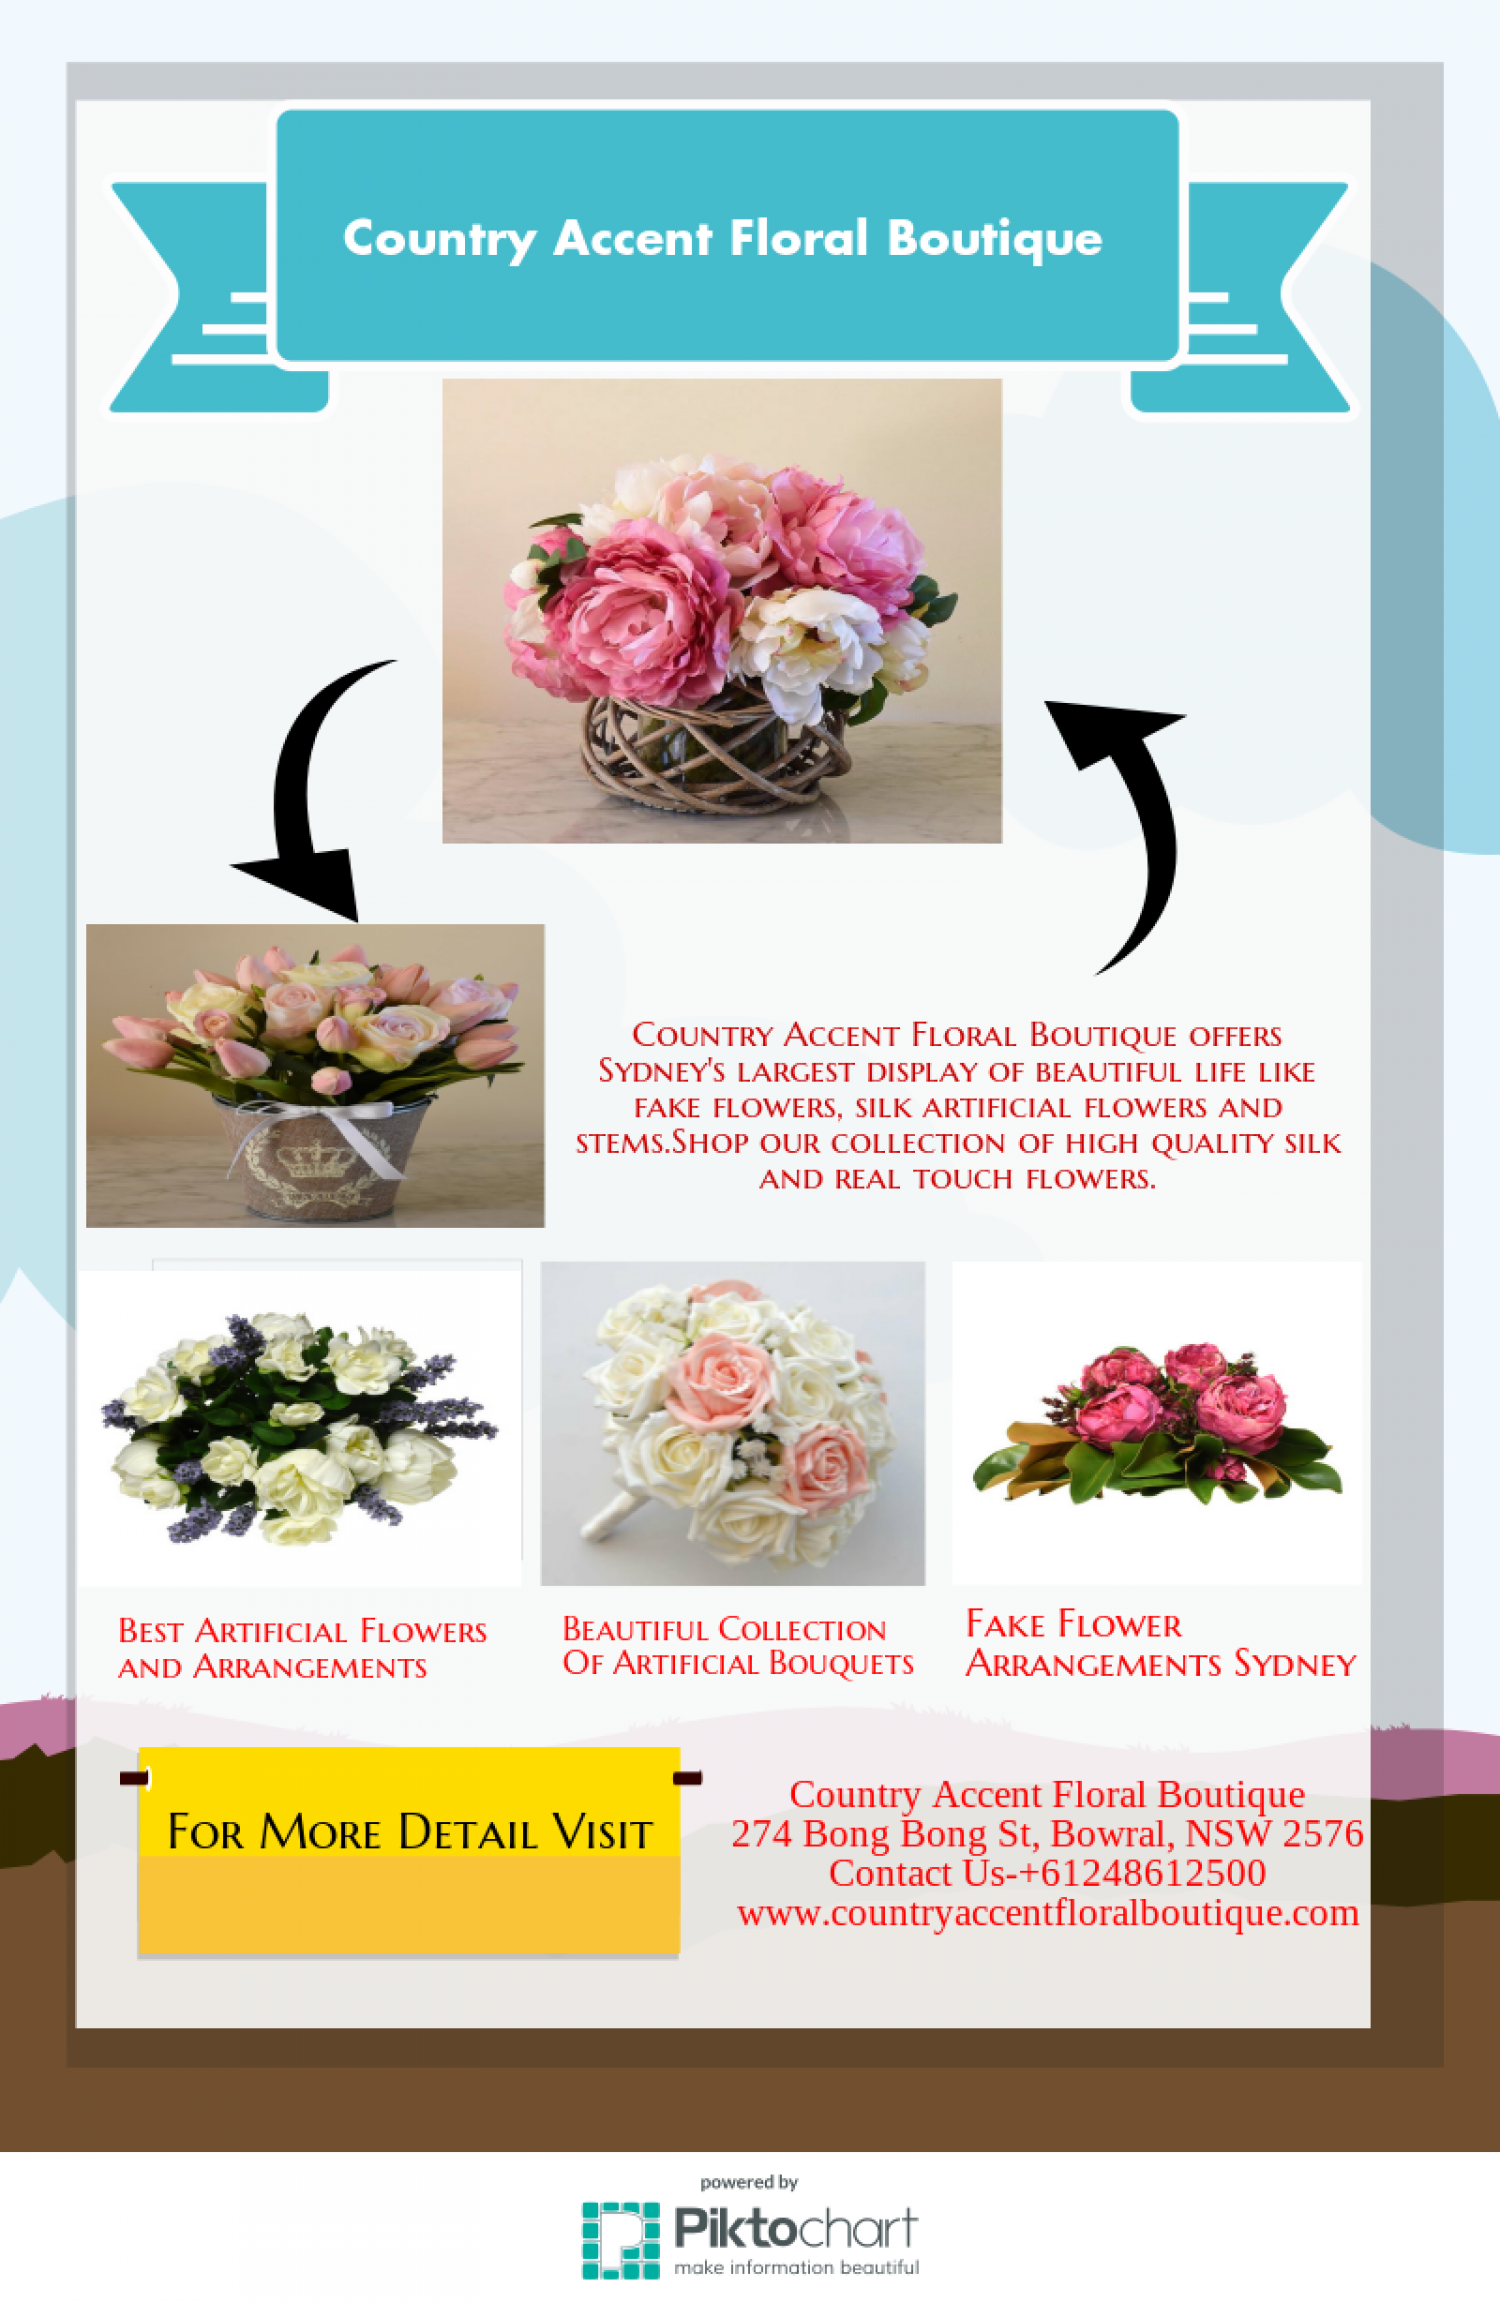 Find Best Artificial Flowers And Arrangements In Sydney Visual